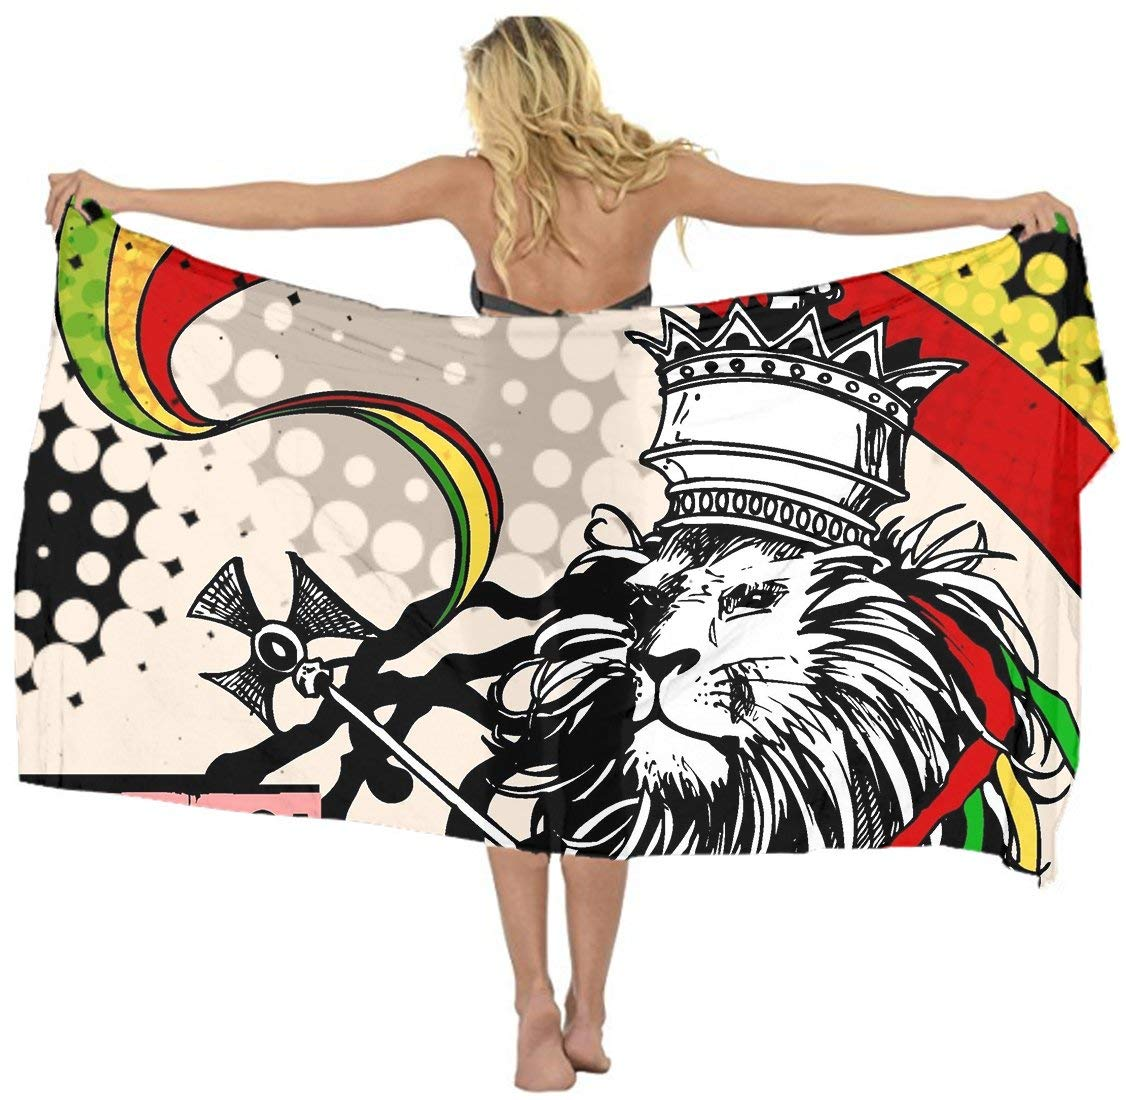 495be020e4 Get Quotations · AMERICAN TANG Cover up Beach Sarong Wrap Rasta Lion  Jamaican Reggae crown Scarf